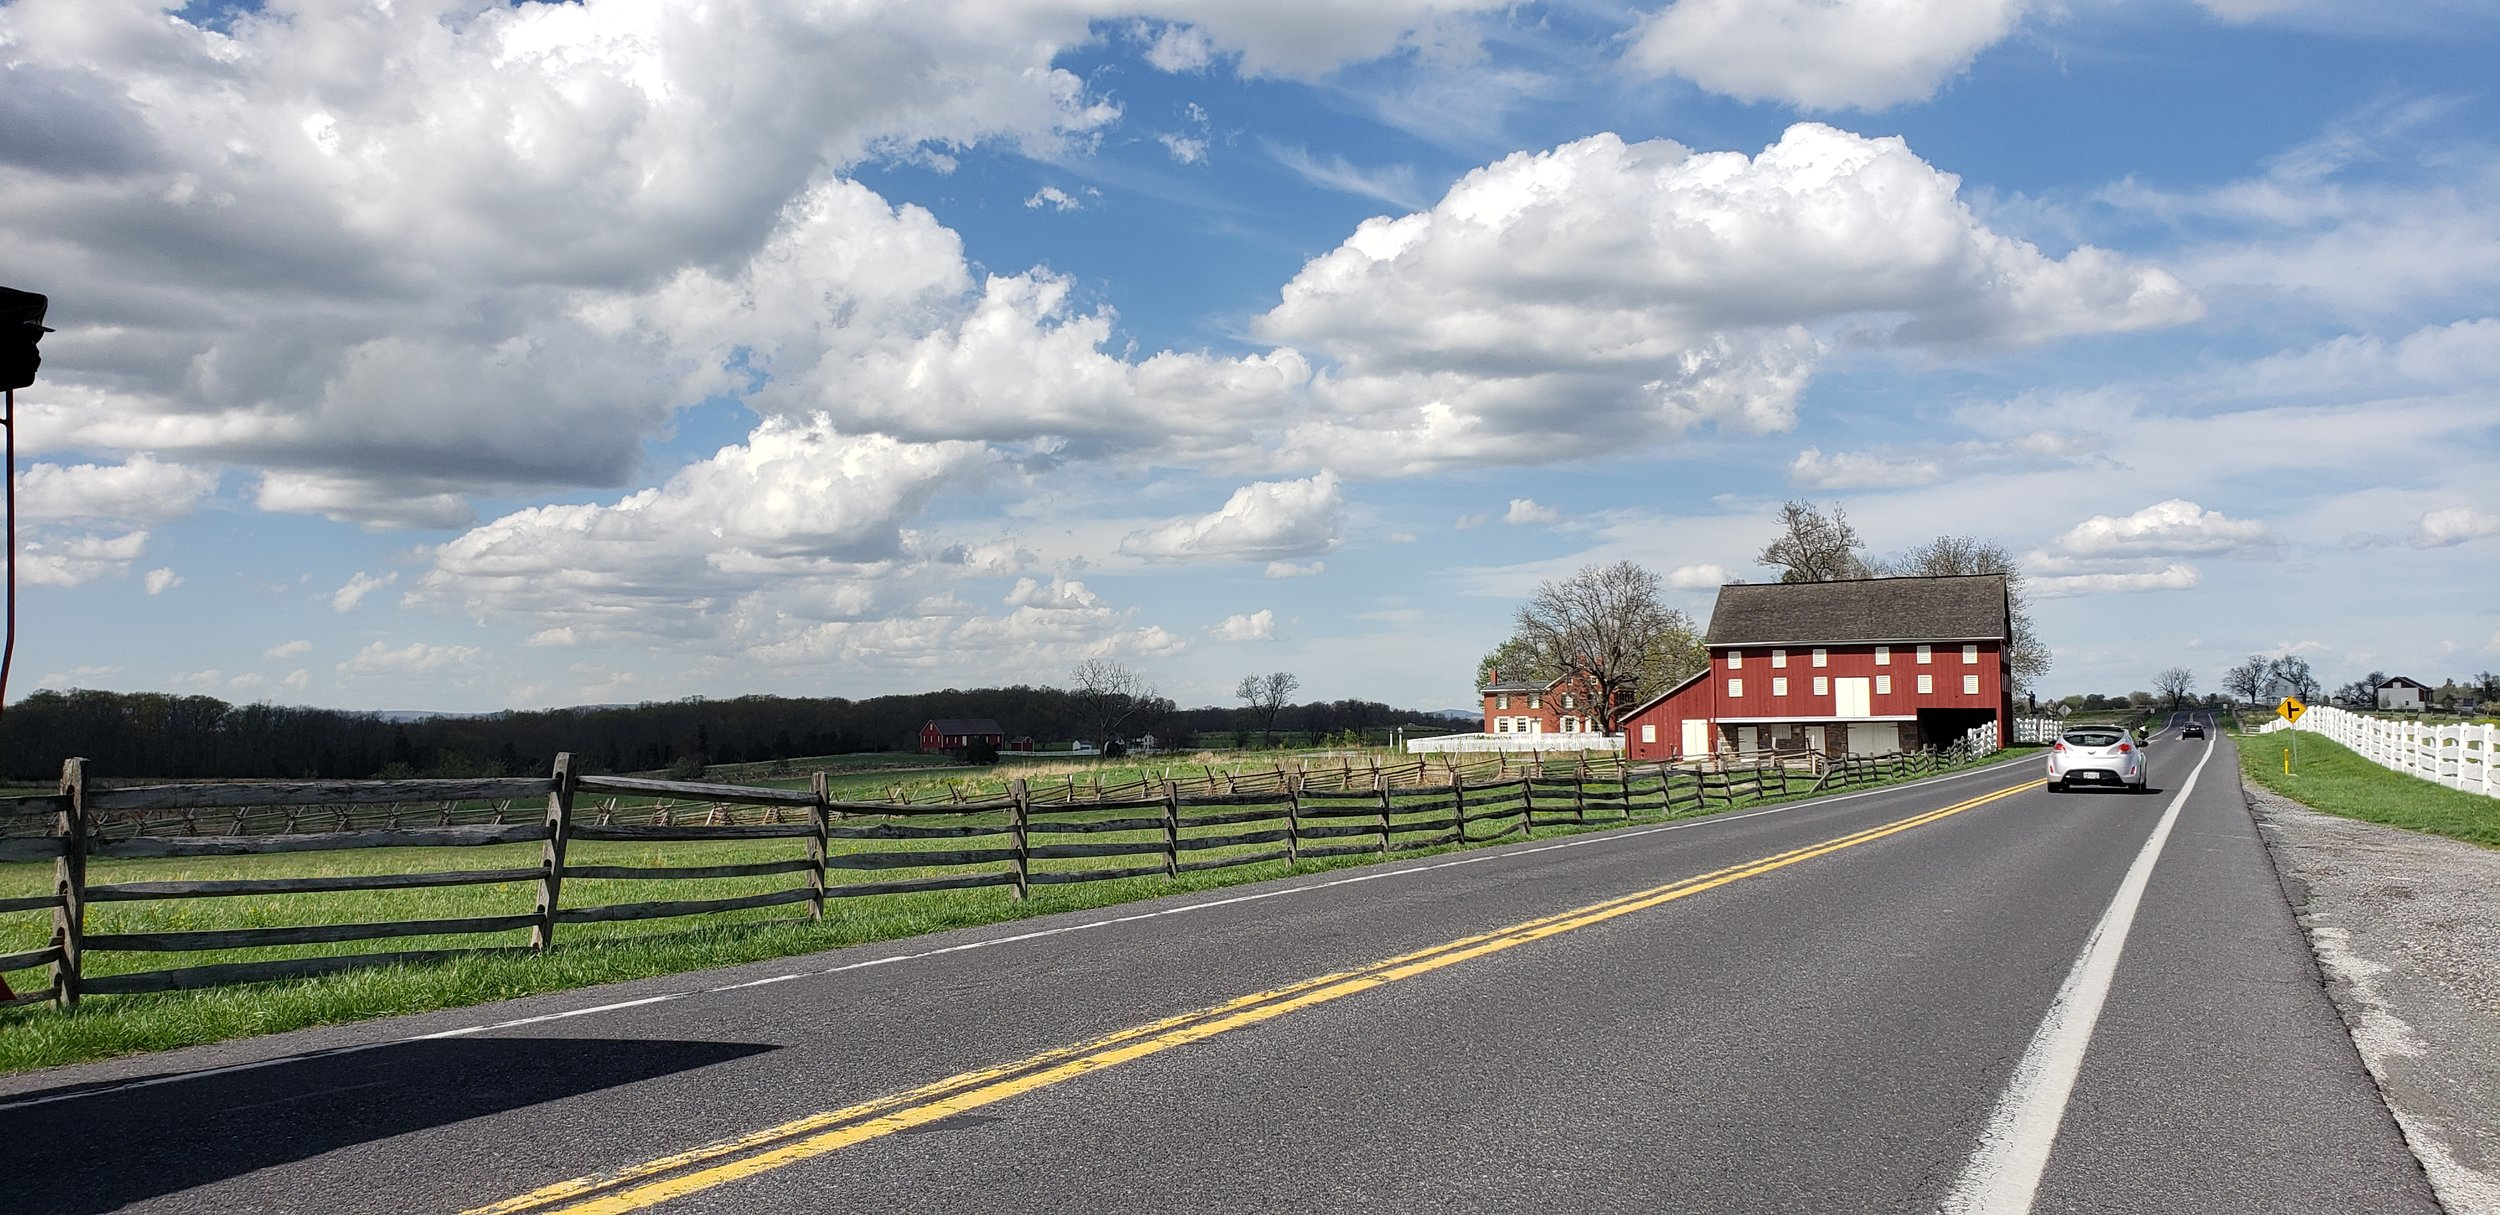 The farms and barns along the old Emmitsburg Road are some of the sites you will visit on your carriage ride.